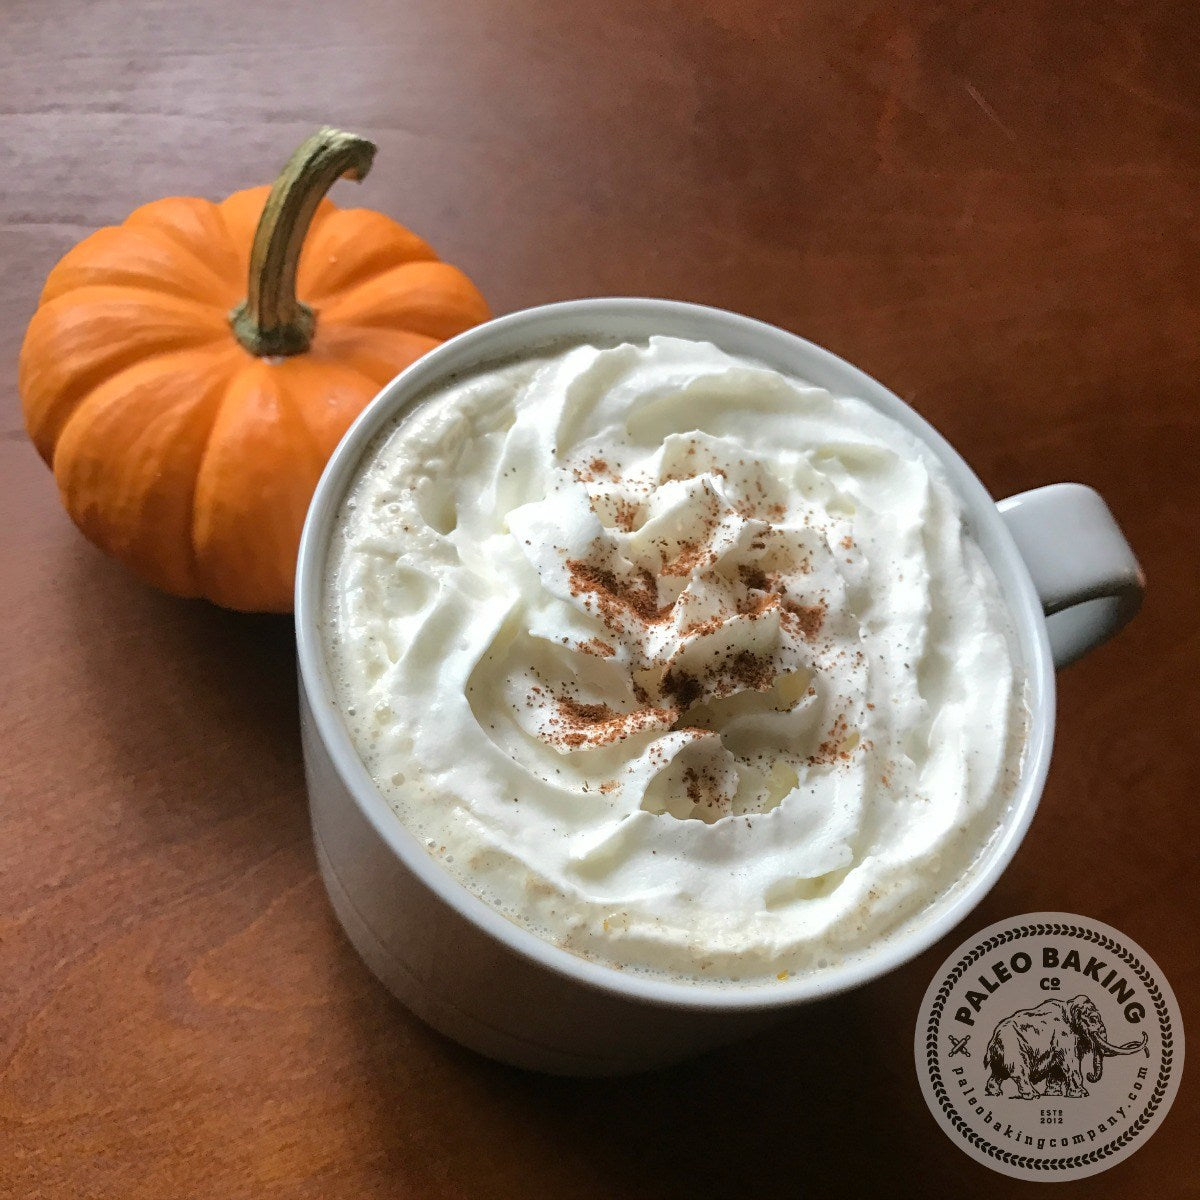 Spooky Pumpkin Spice Latte Adult Beverage